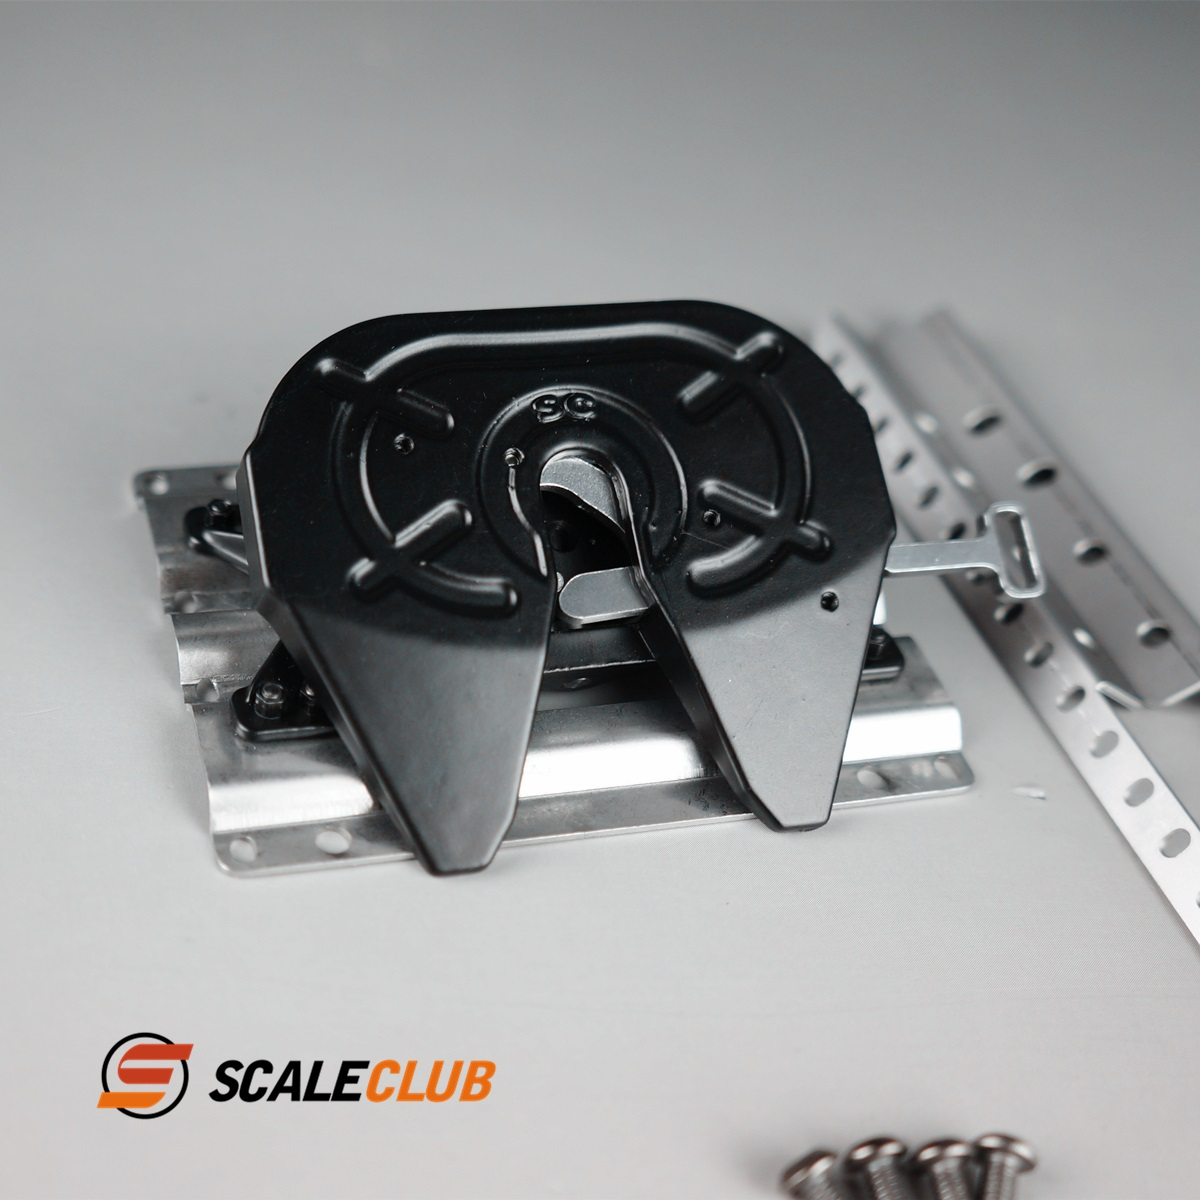 SCALECLUB  1/14 Universal  Metal cross mill base